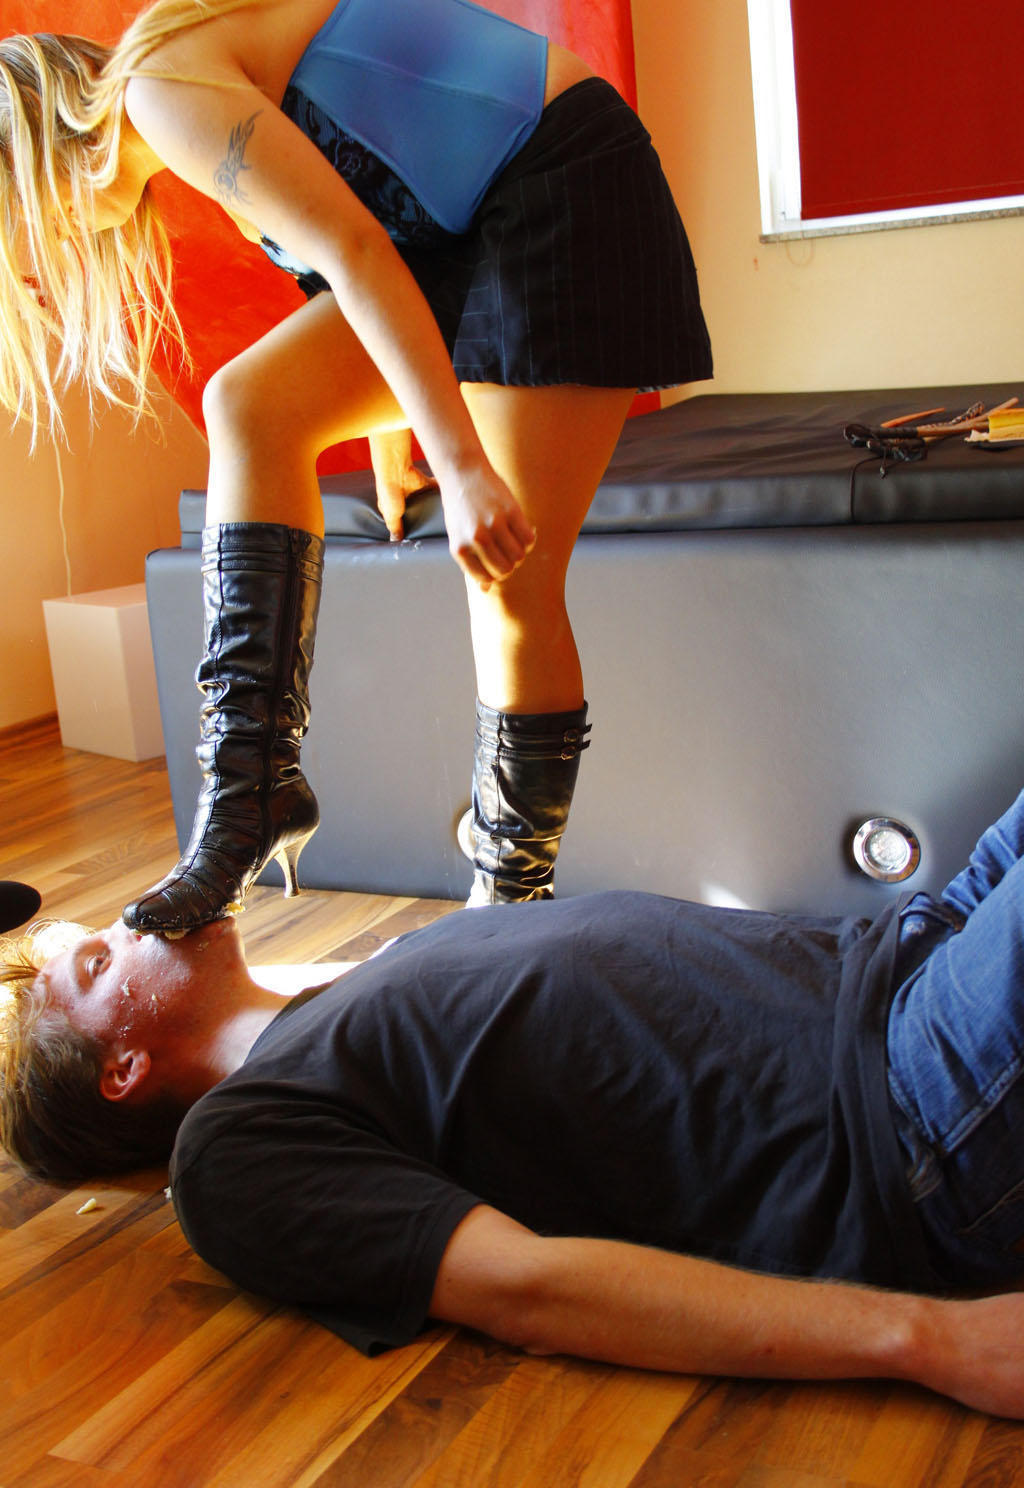 Lick the sole of her boot